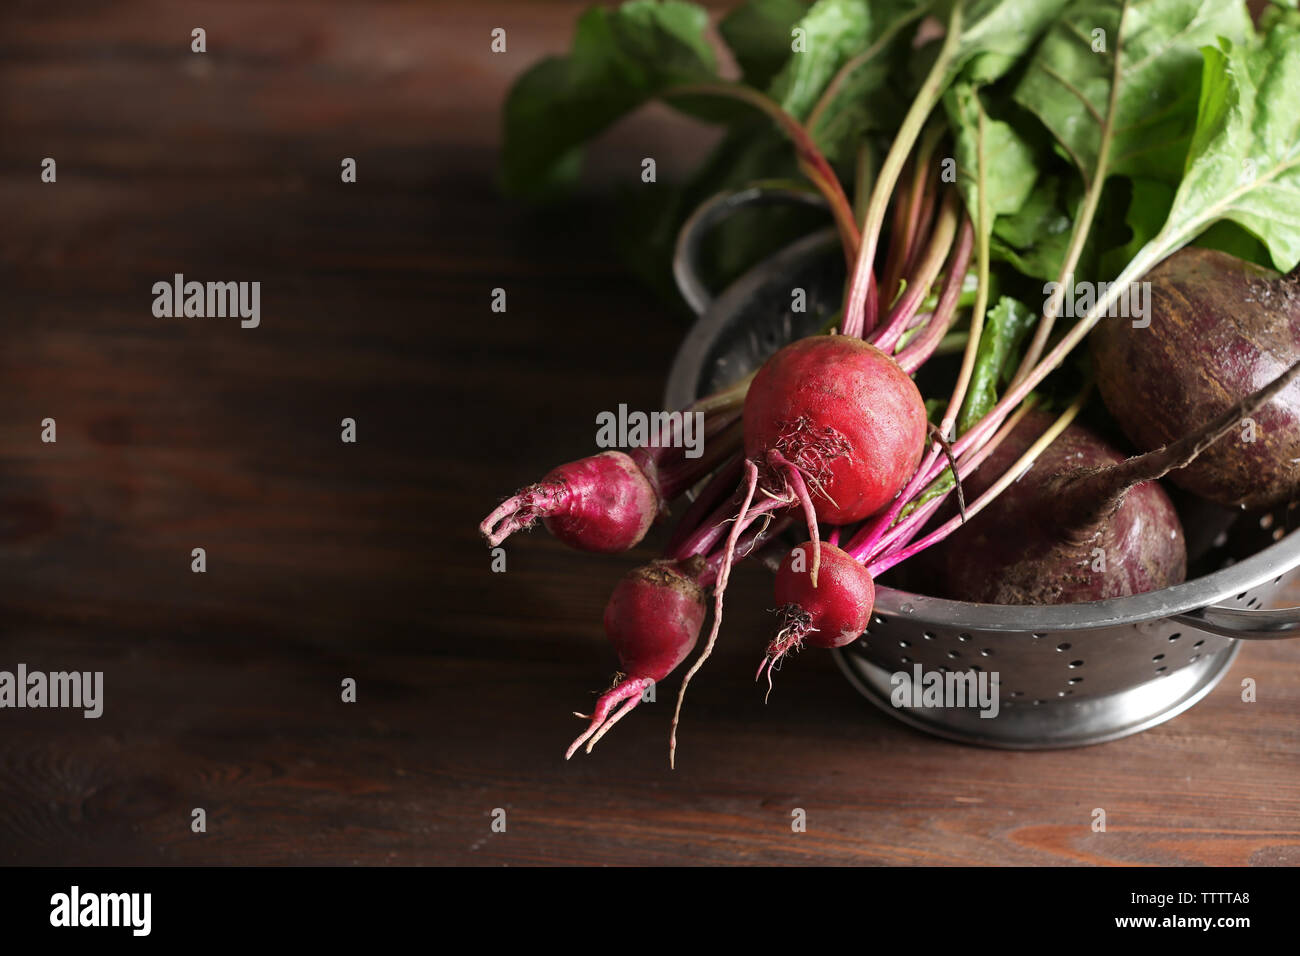 Bunch of fresh beets in a colander on wooden table Stock Photo